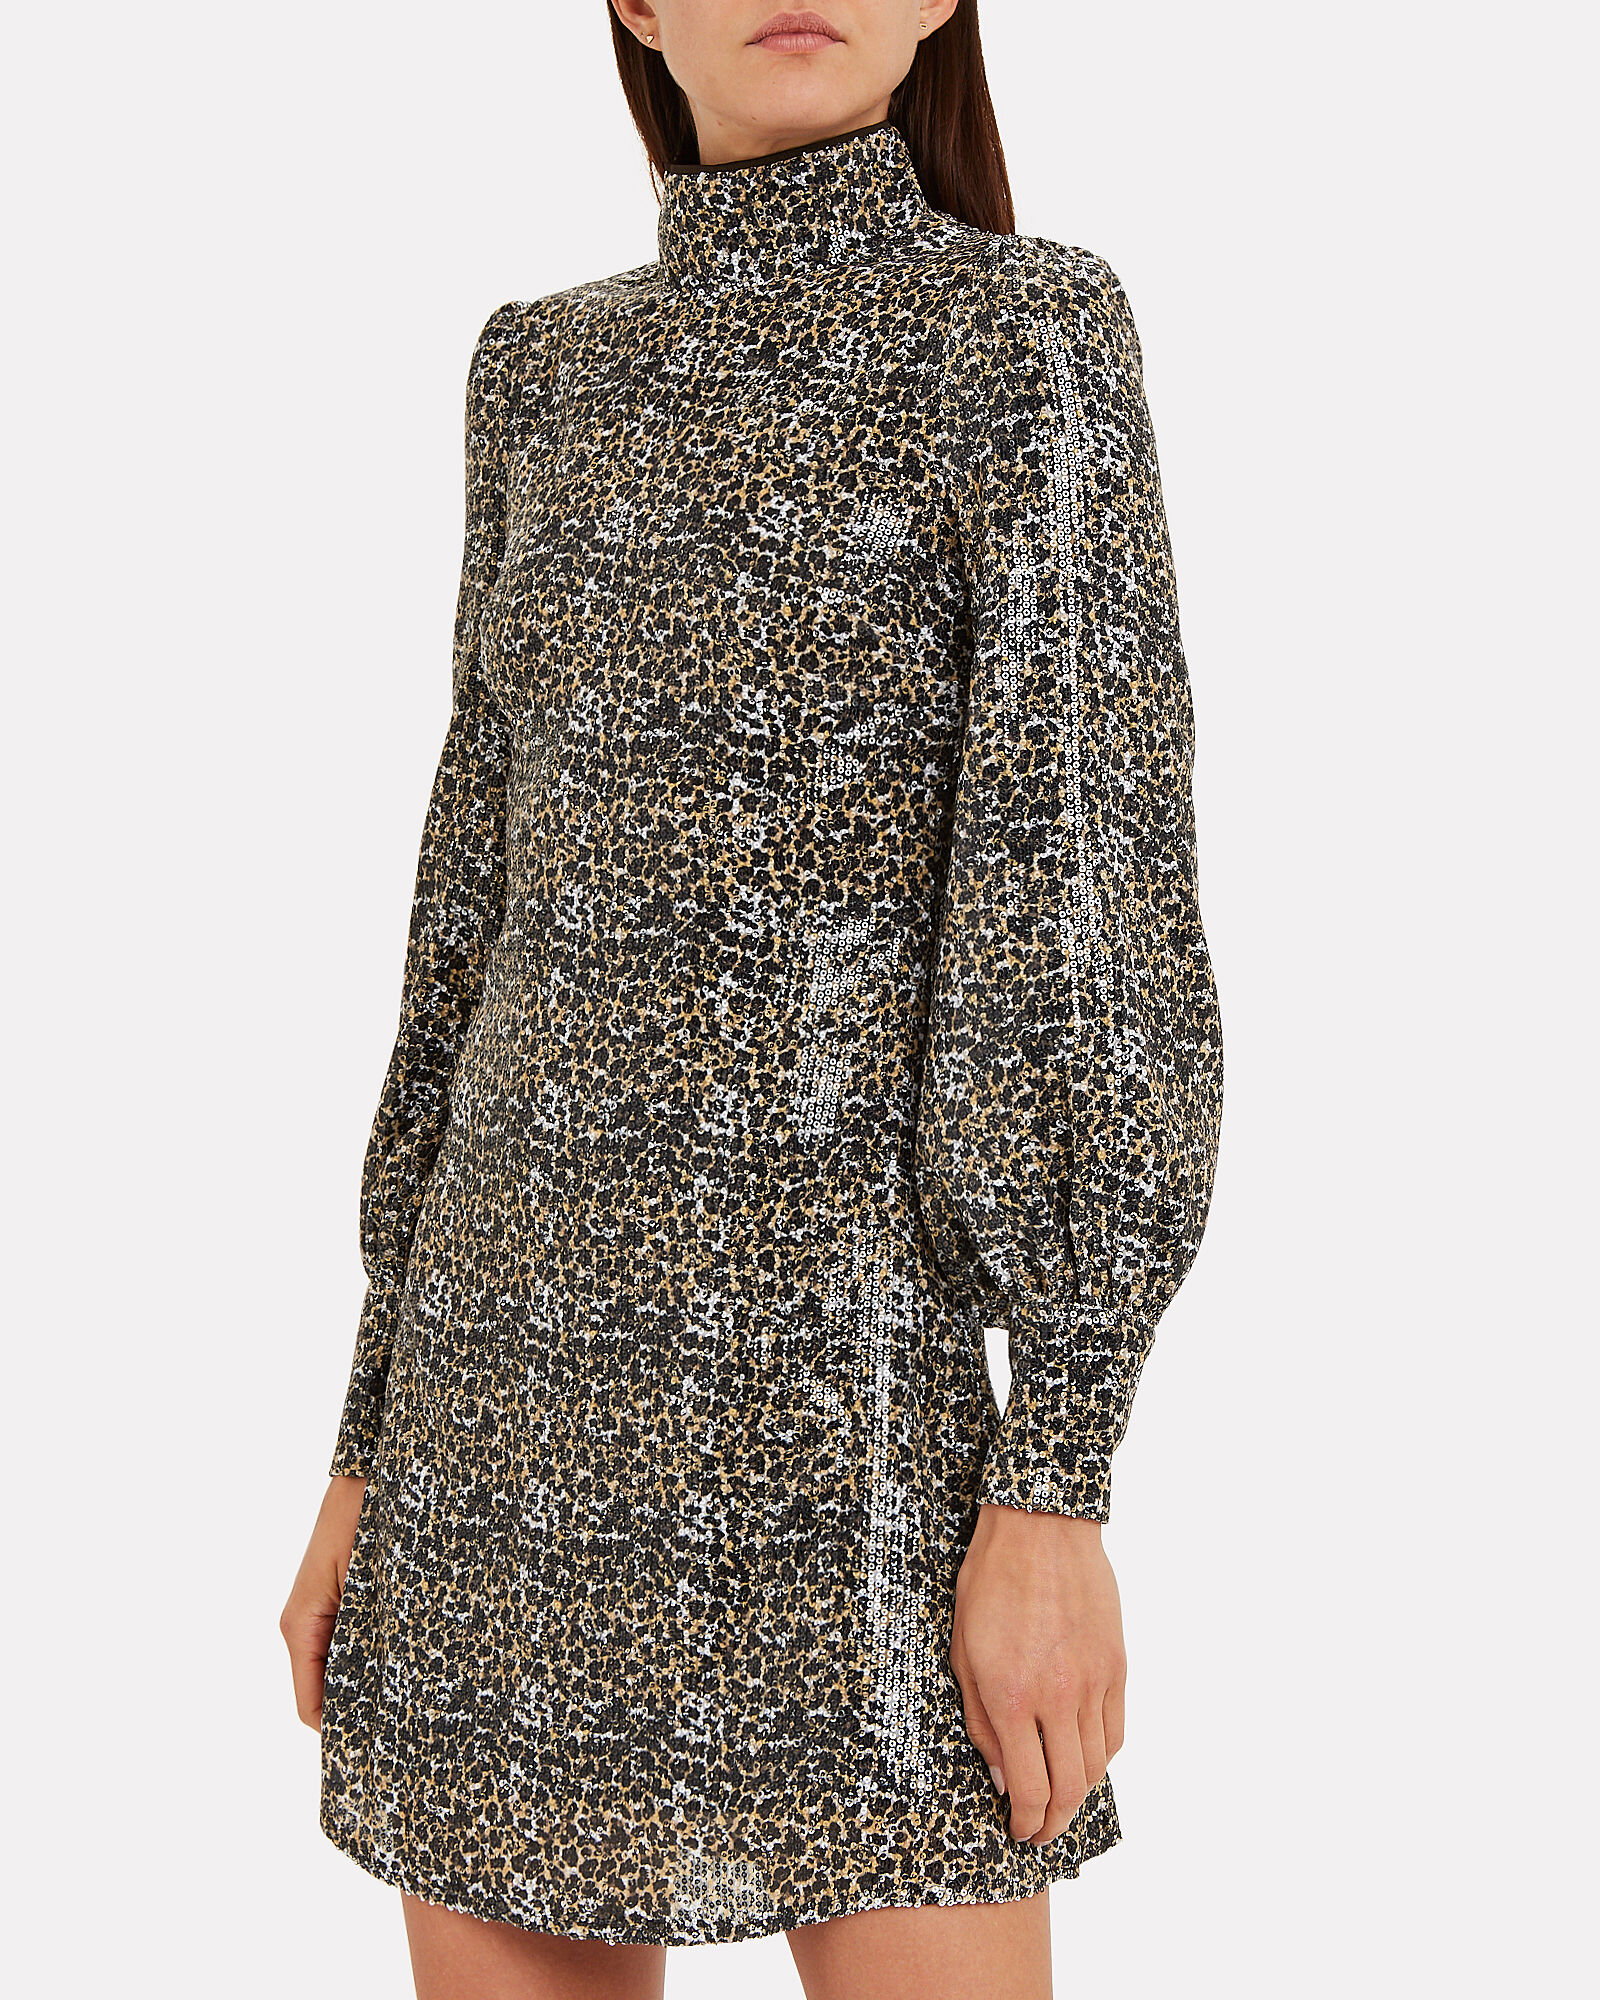 Melissa Leopard Sequin Dress, BROWN/LEOPARD, hi-res